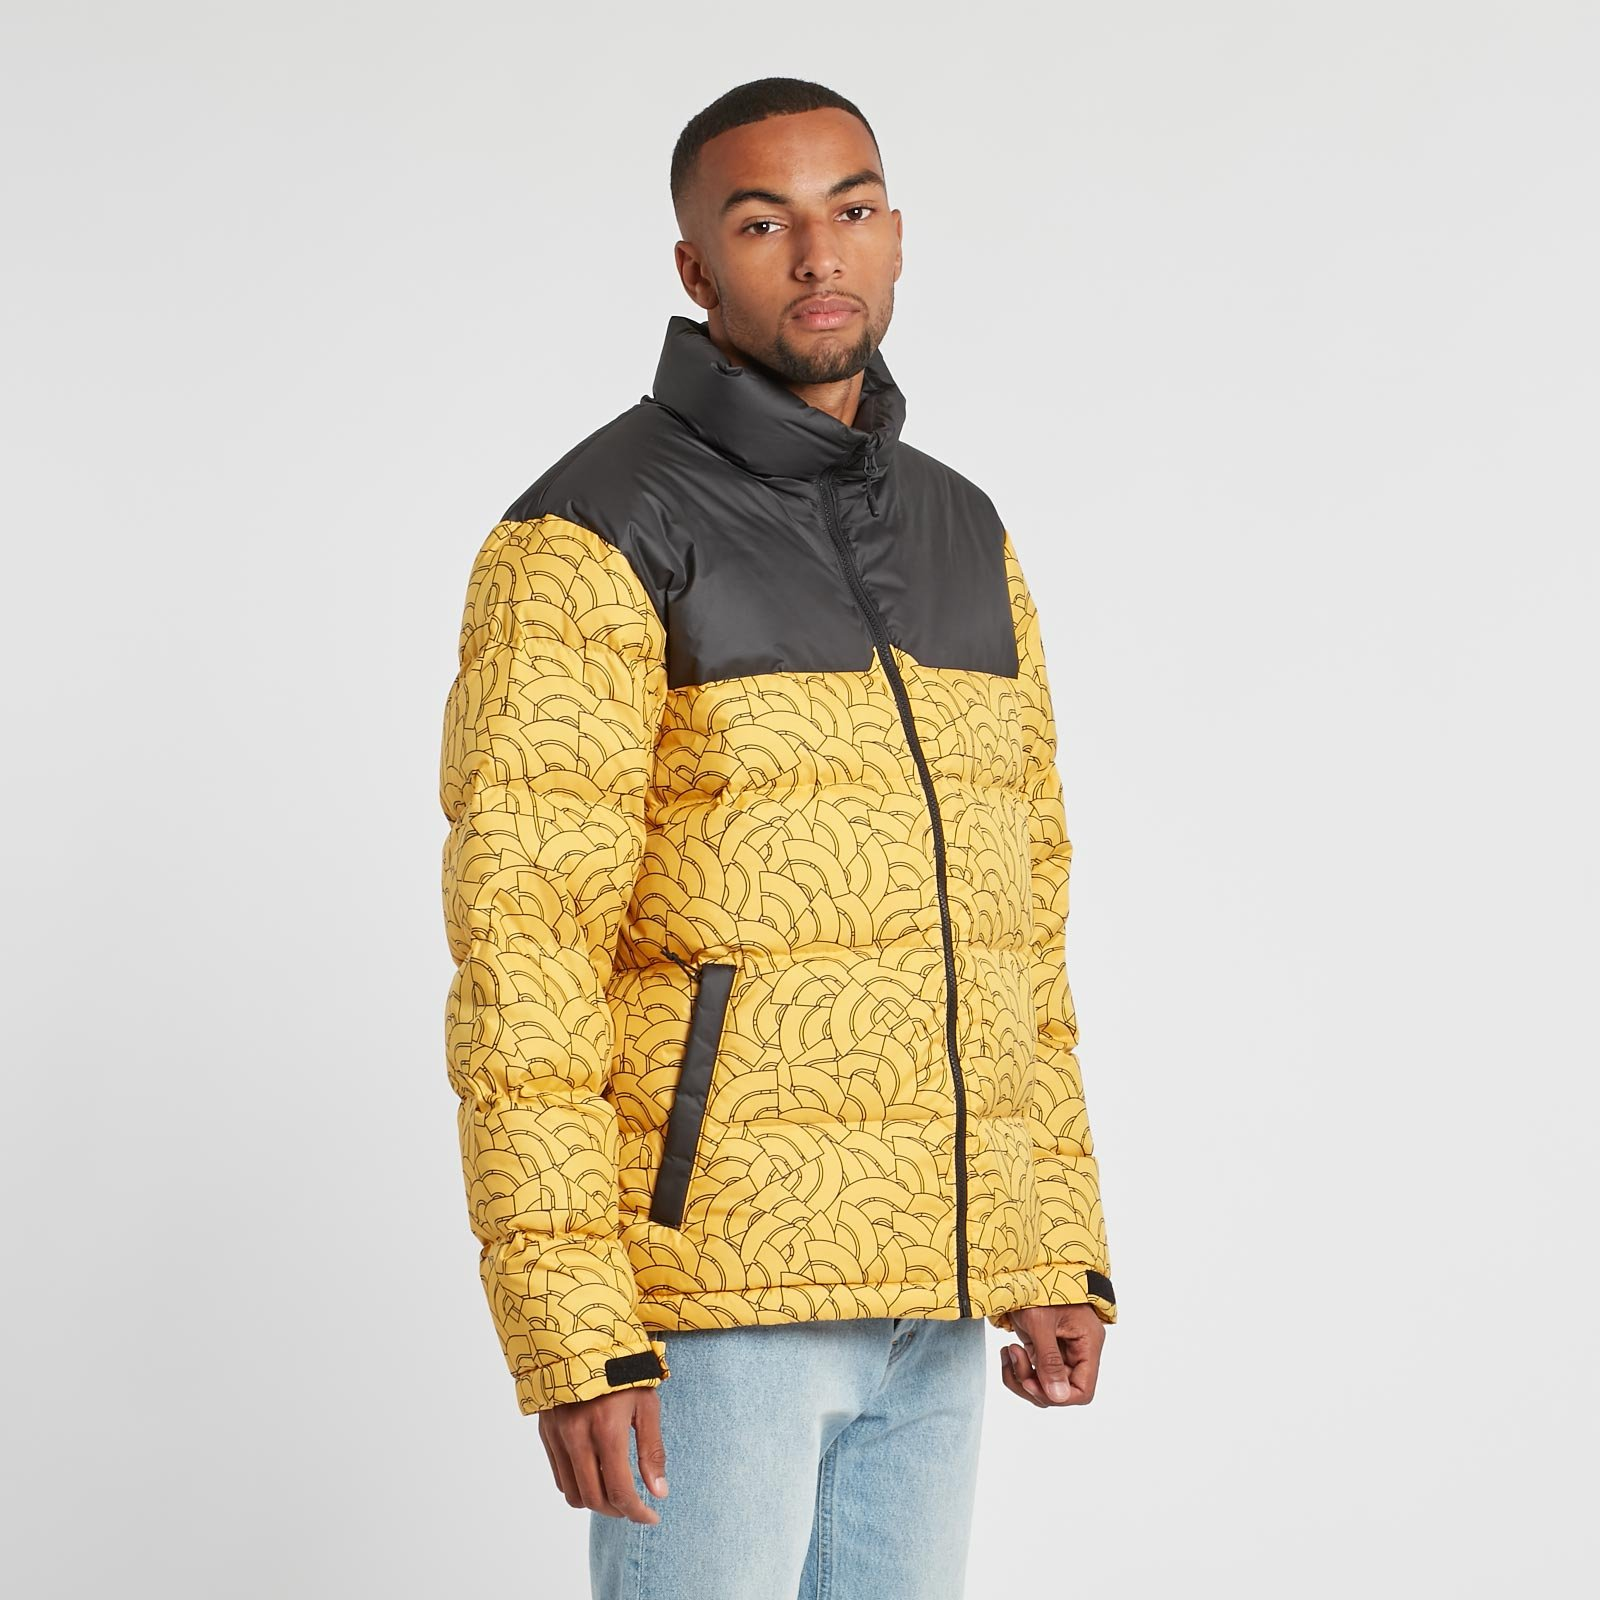 fd90d2ca1 The North Face M 1992 Nuptse Jacket - T92zwewwr - Sneakersnstuff ...